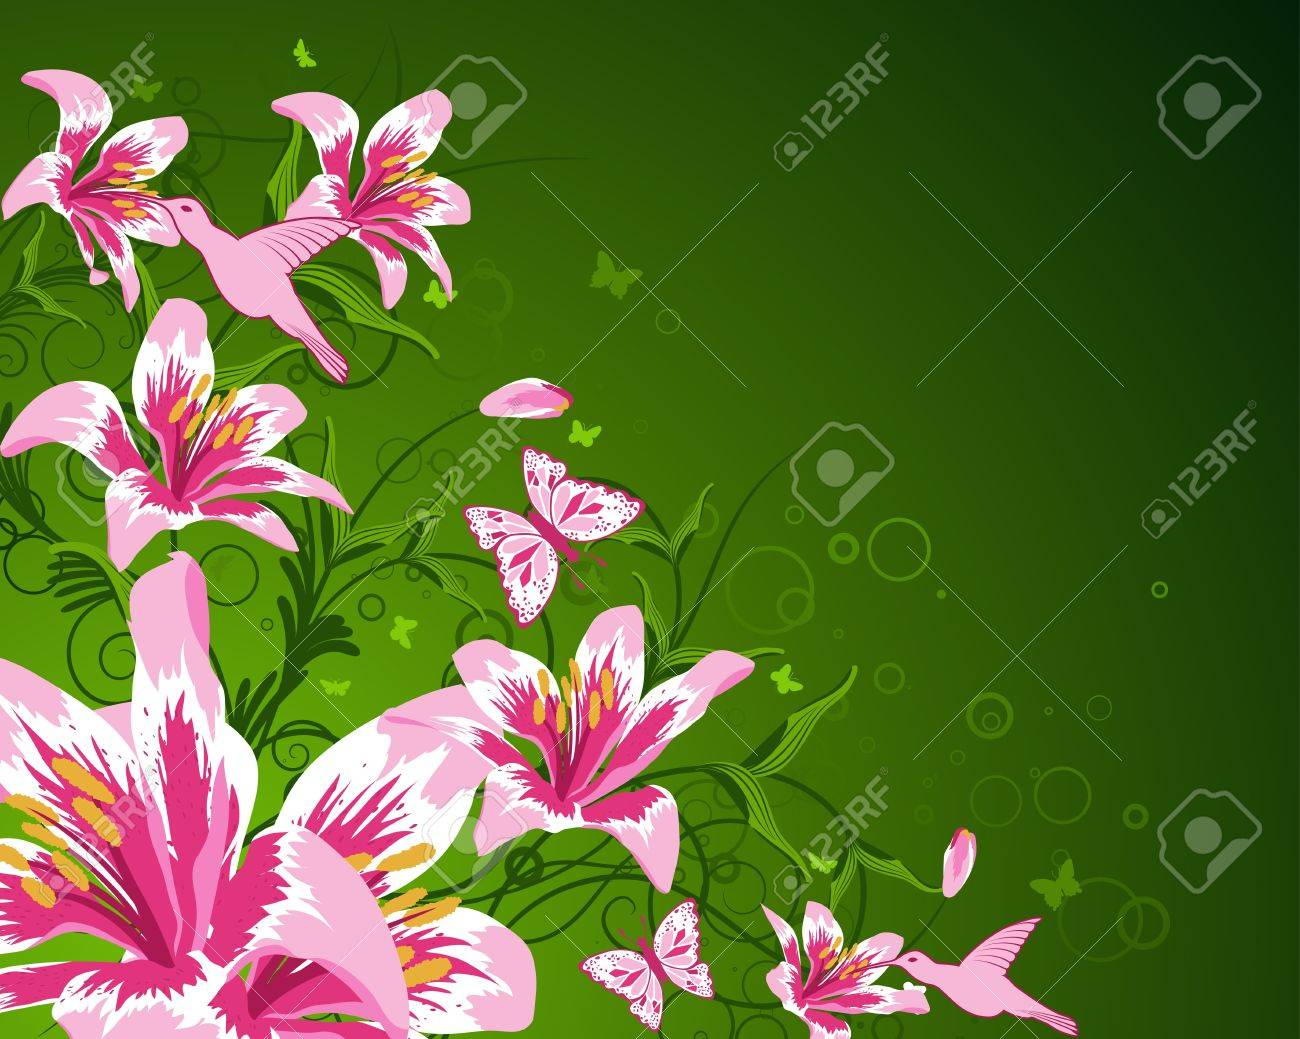 Abstract floral vector background for design use Stock Vector - 10917705